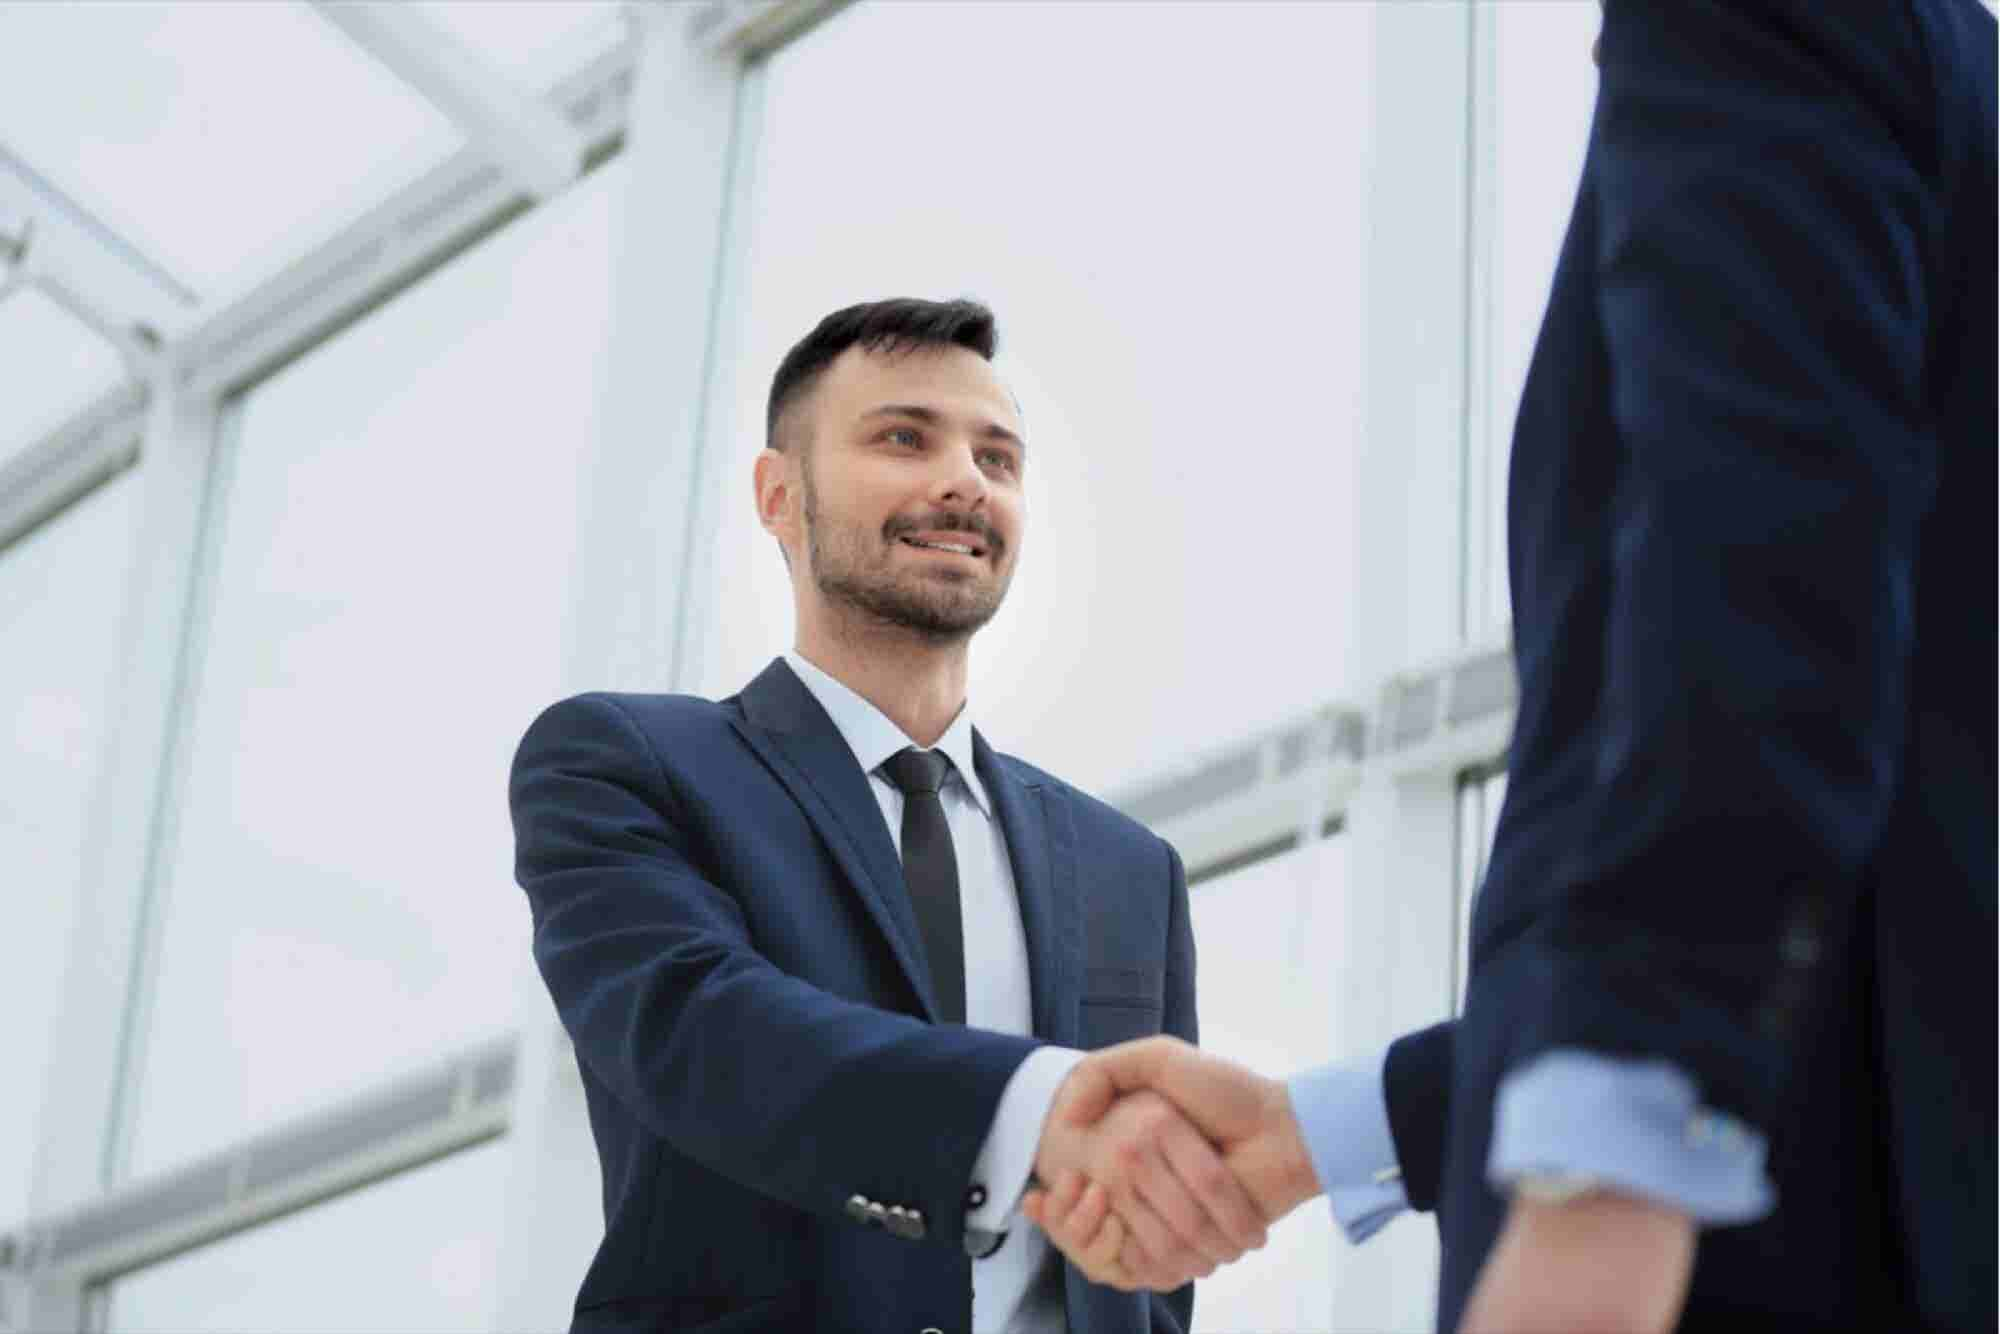 How to Make New Hires Feel They Belong?